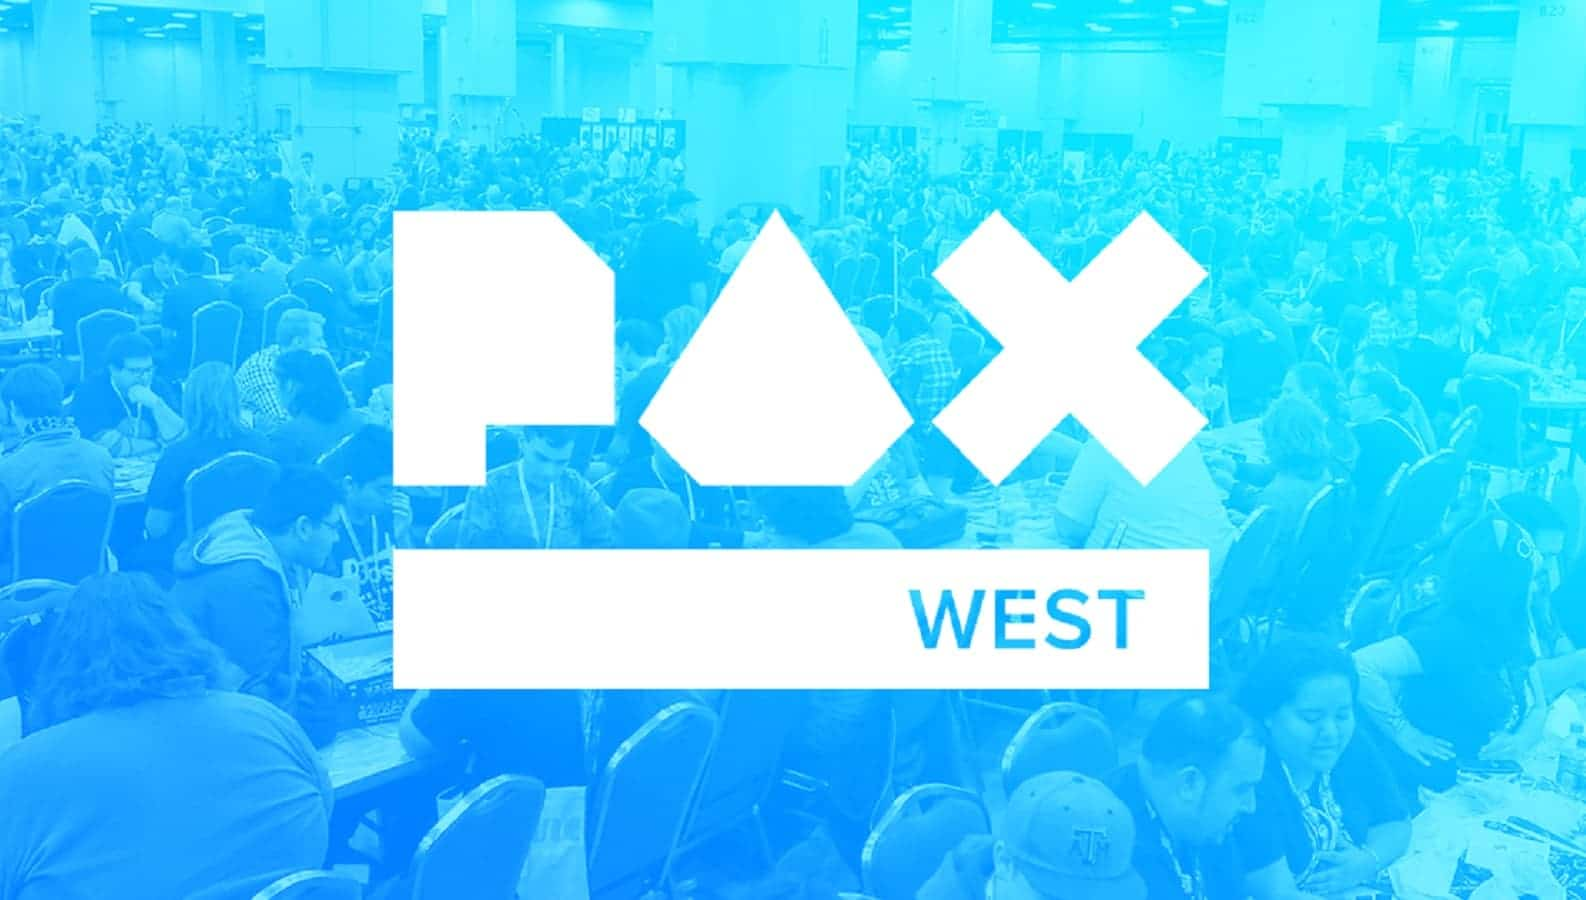 PAX West 2020 intends to go on as planned in September